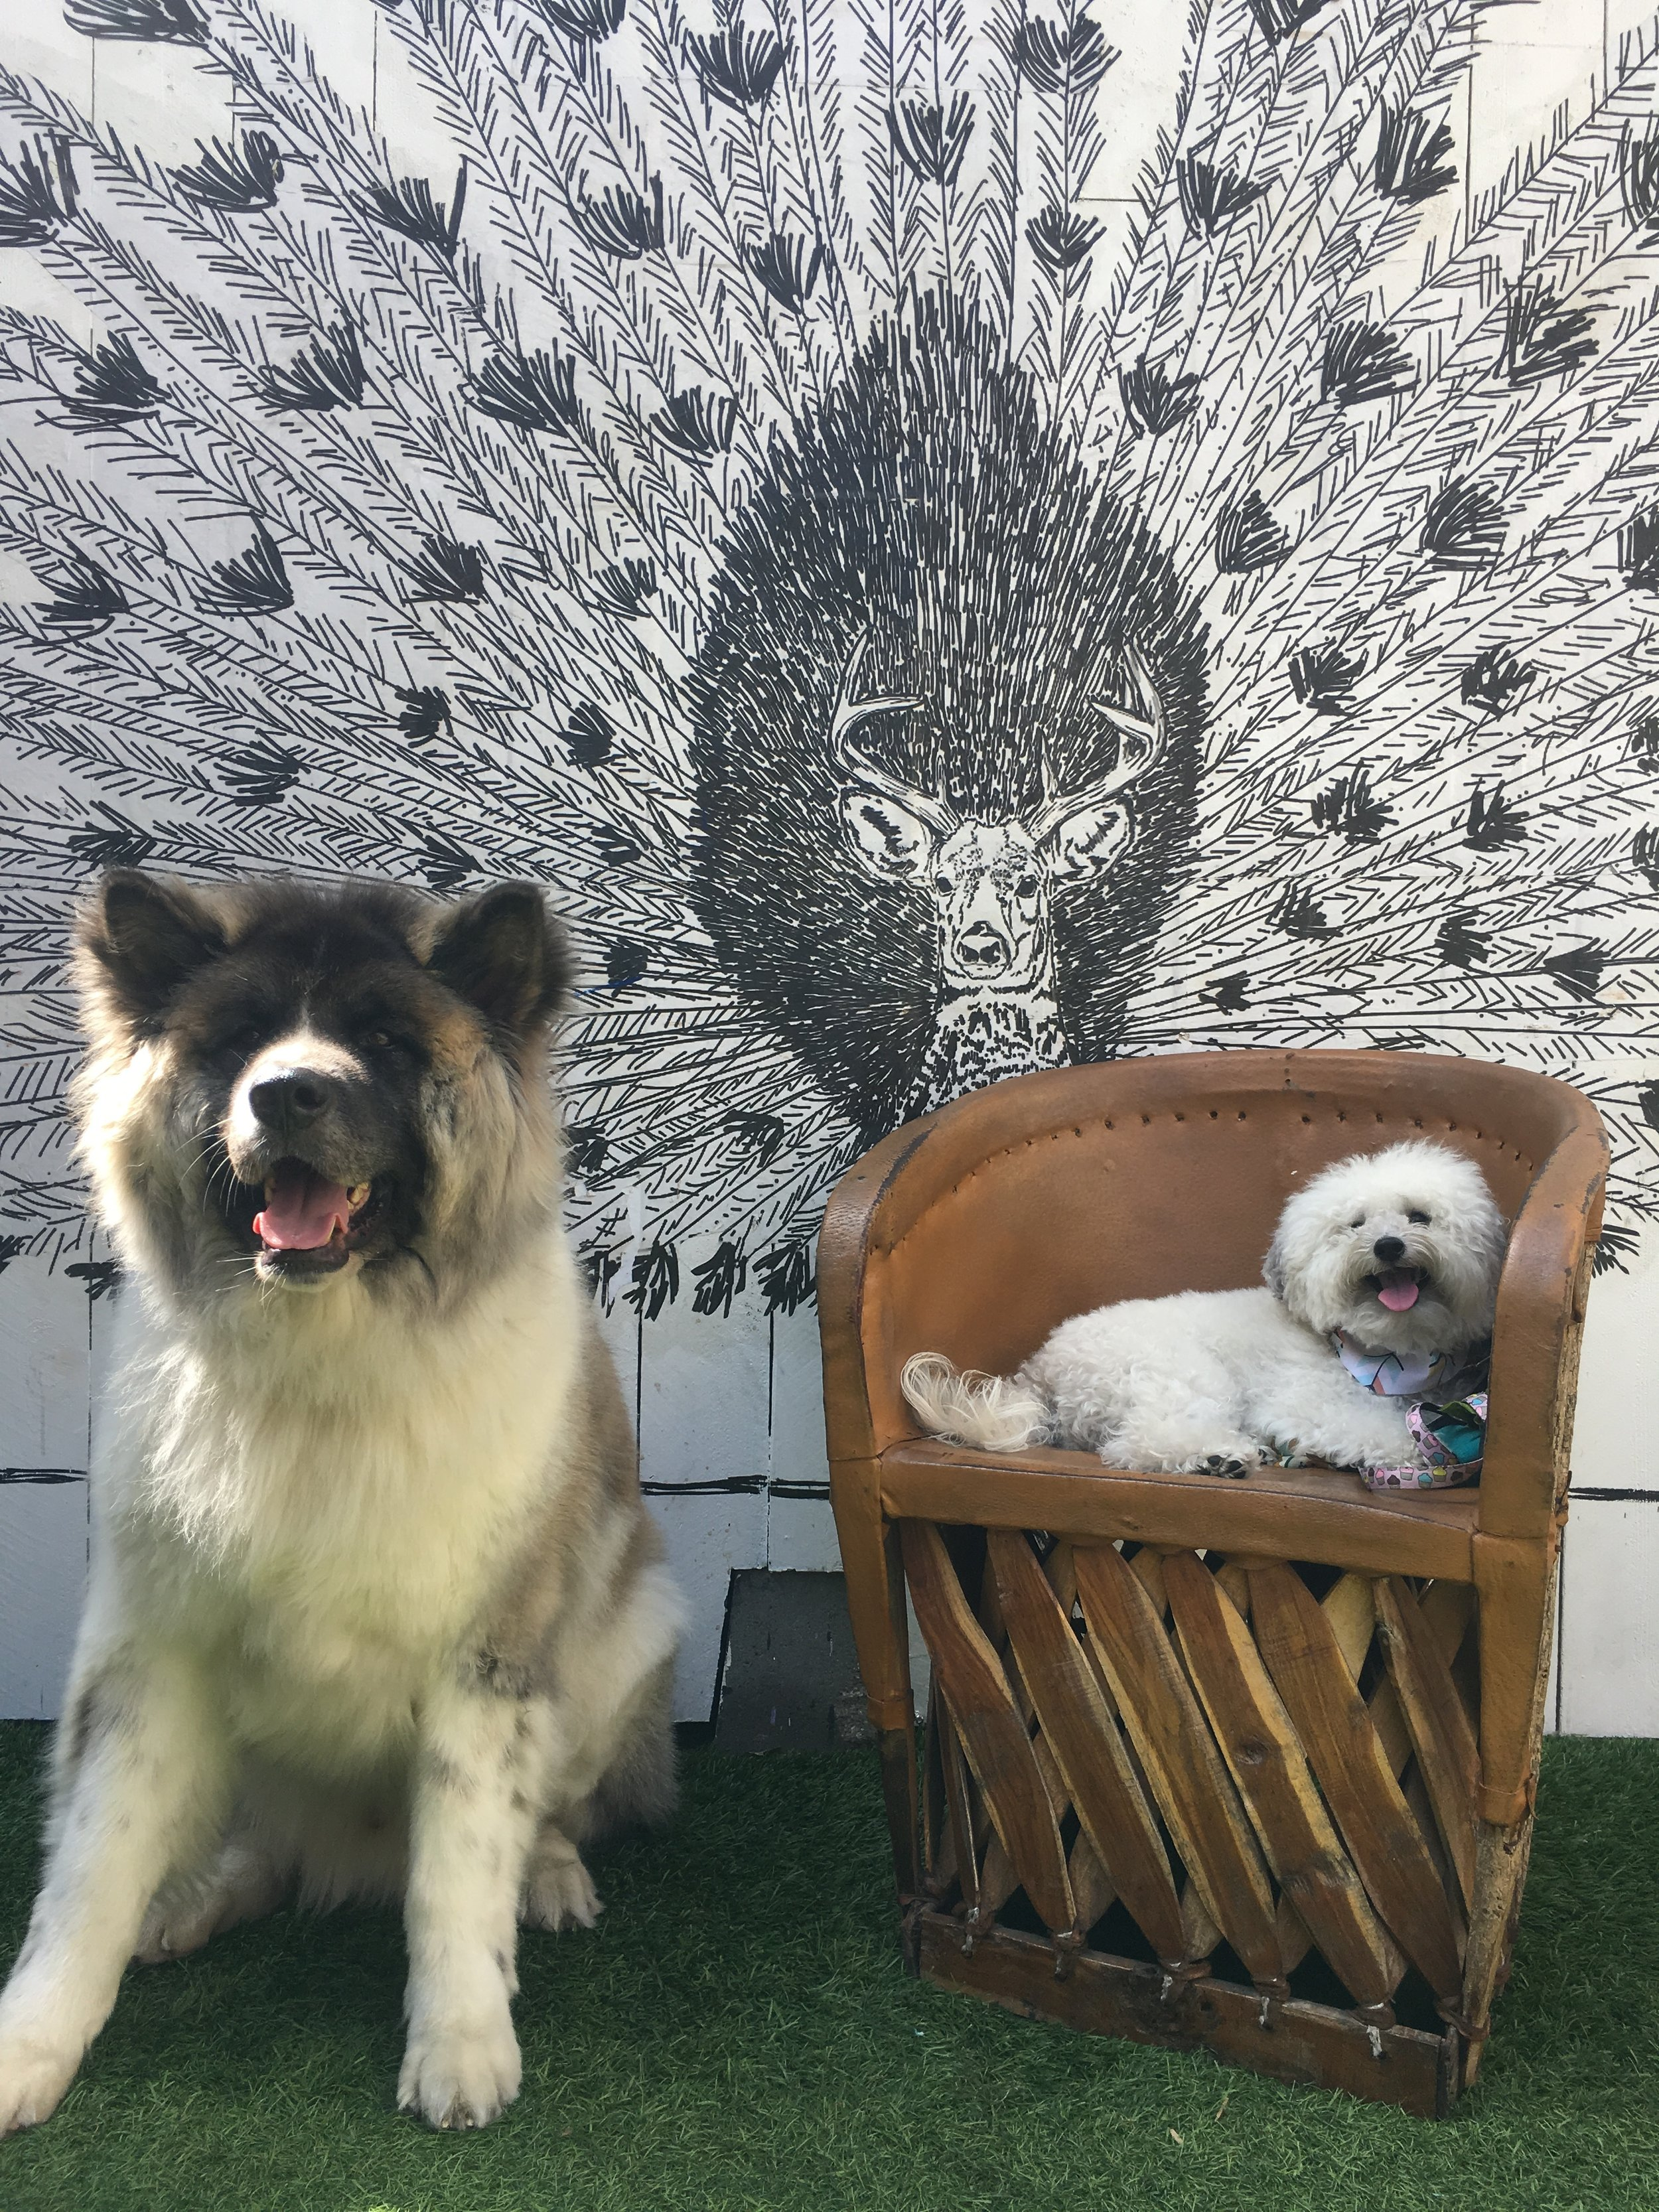 Cute fluffy dogs by a mural at Toms dog-friendly coffee shop in Venice Beach, CA | Watson & Walls